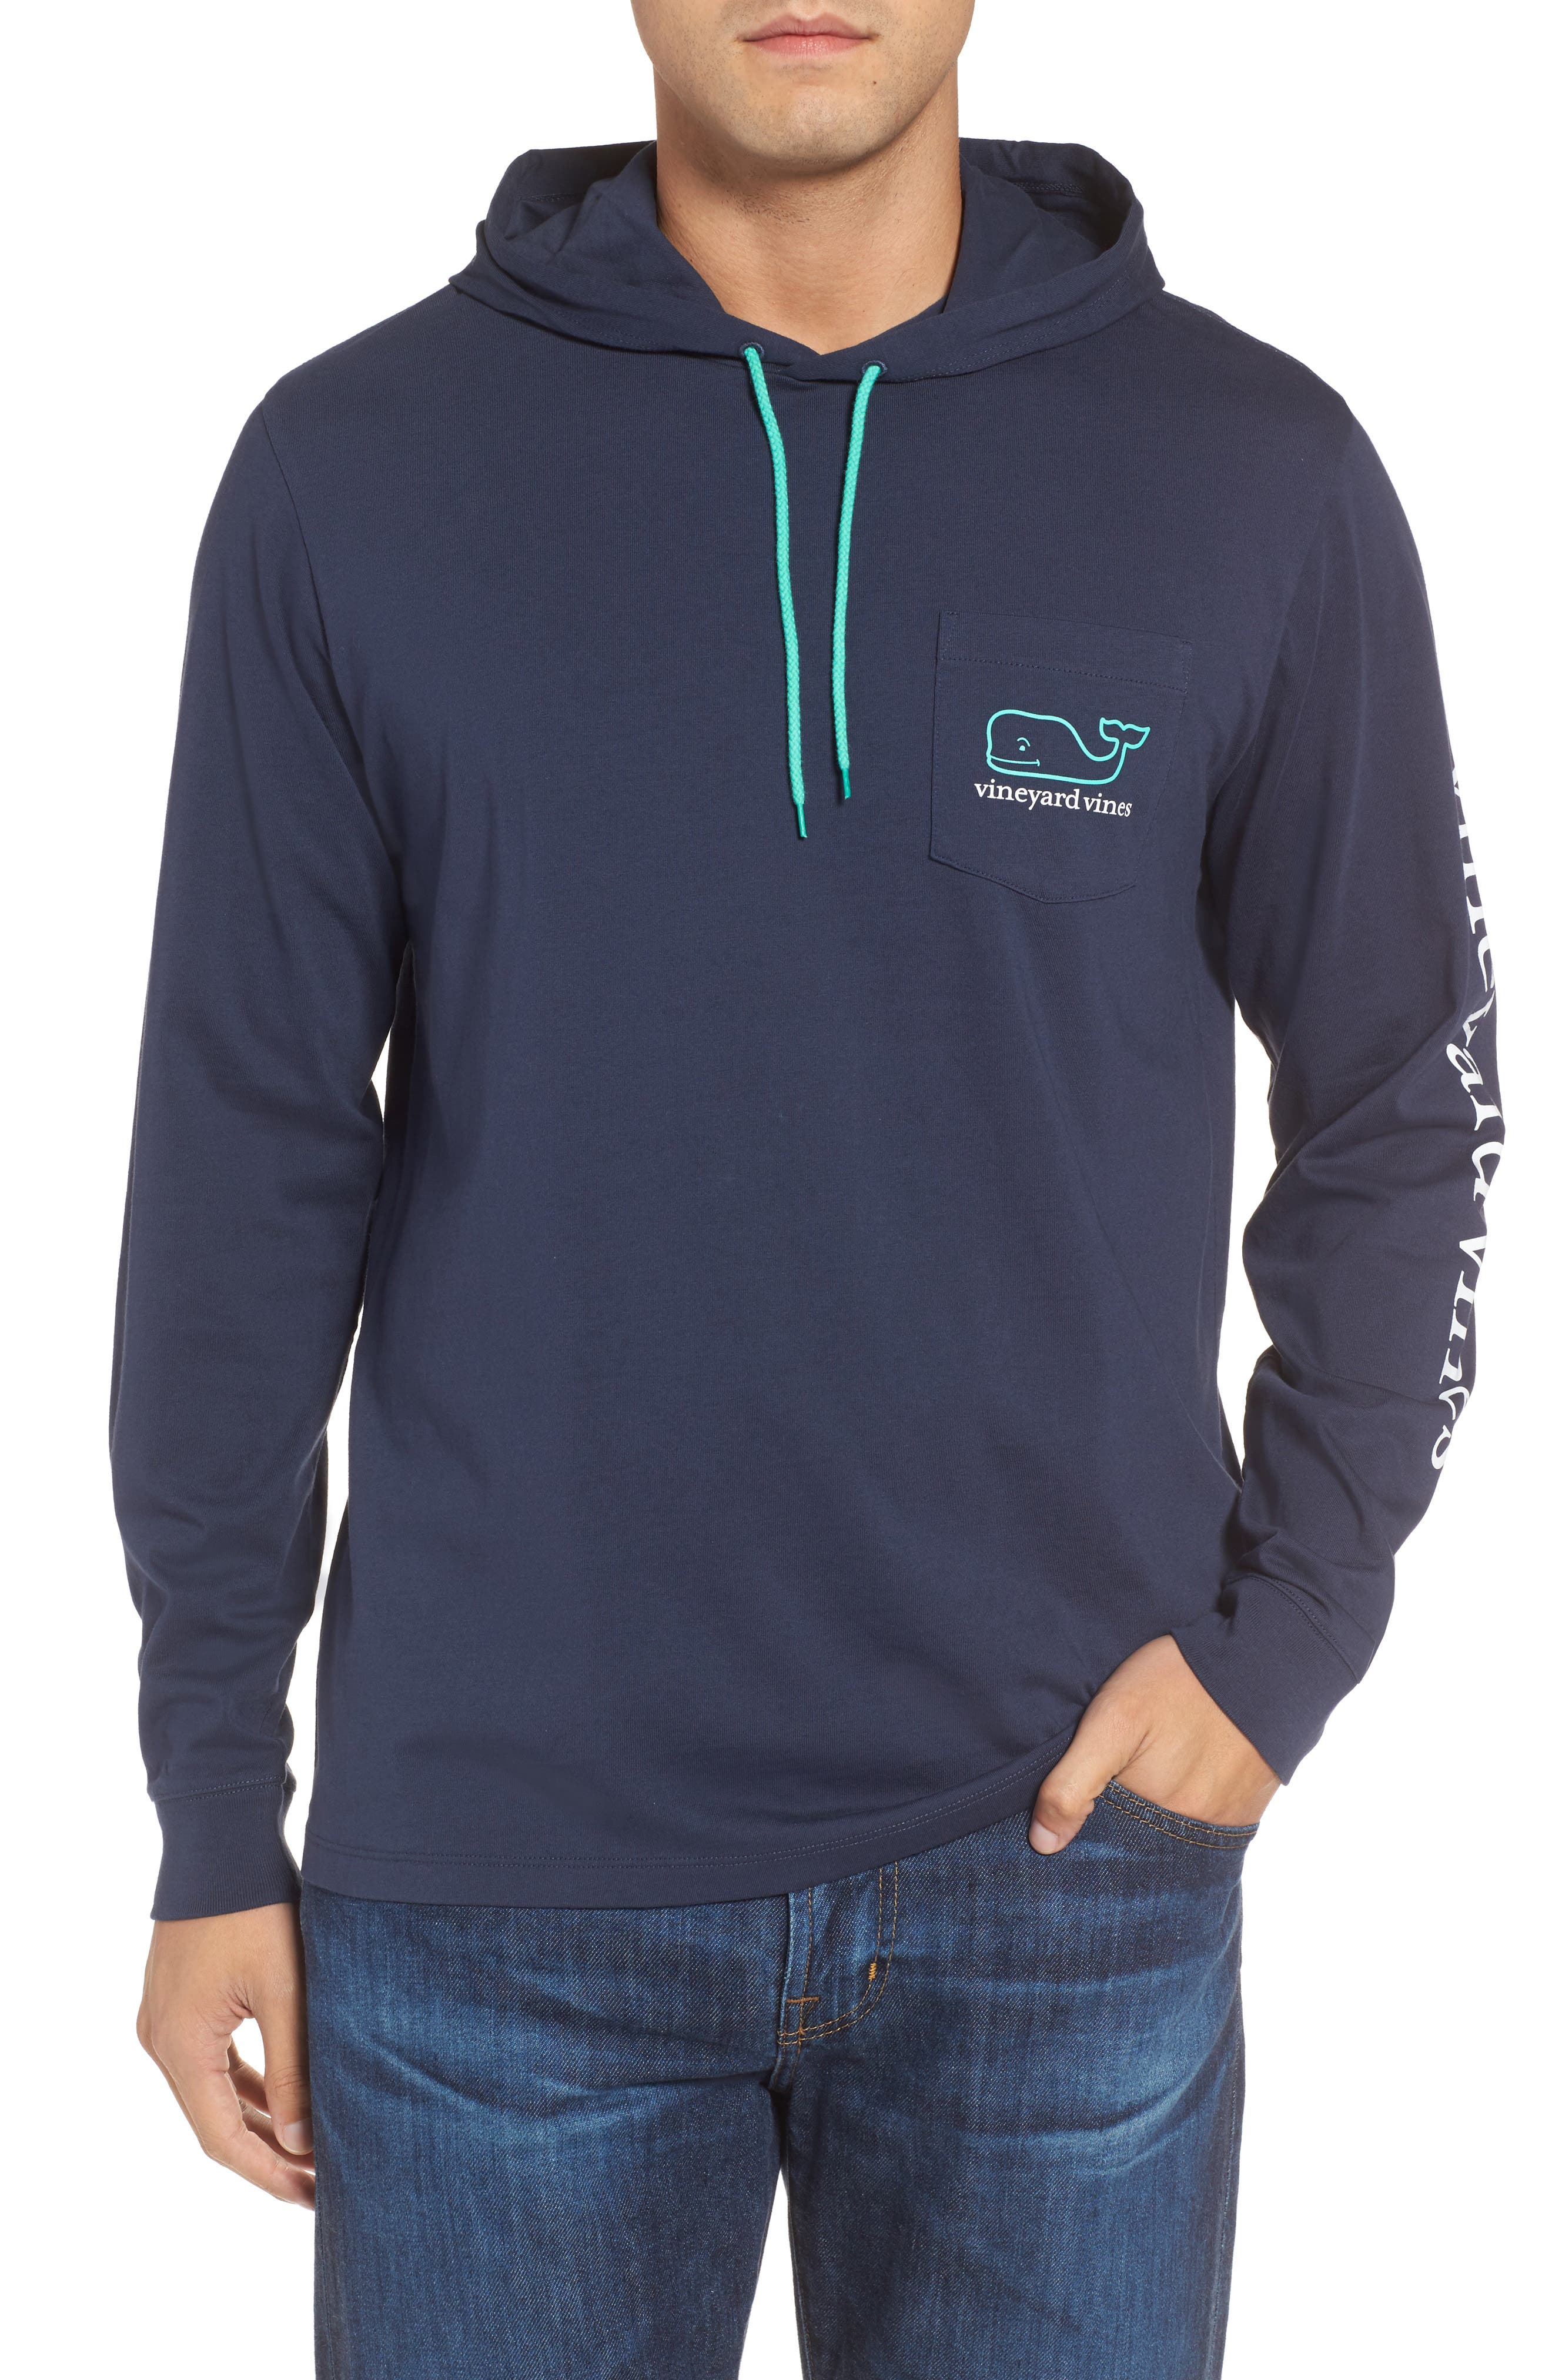 vineyard vines Whale Graphic Hooded T-Shirt